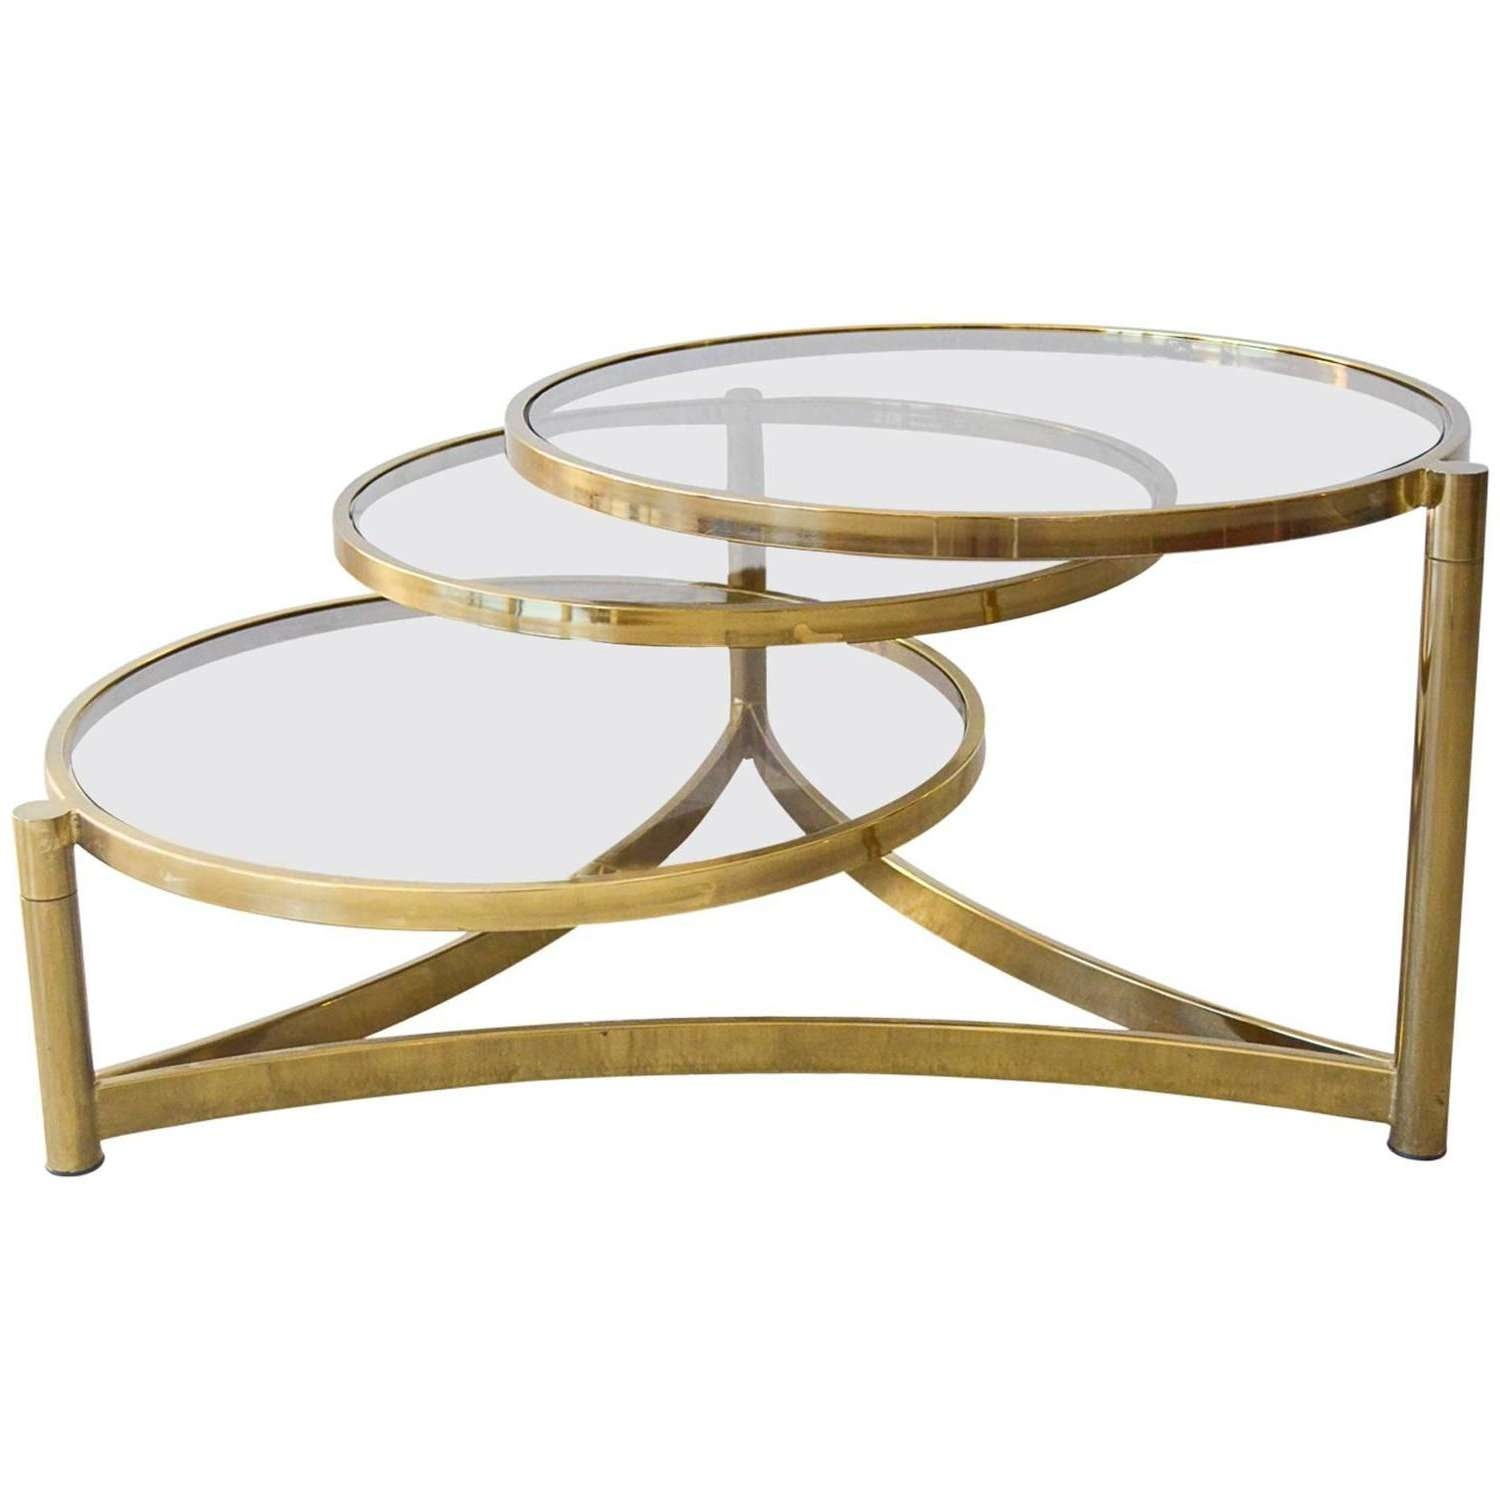 Recent Antique Brass Glass Coffee Tables With Regard To Coffee Table : Magnificent Coffee Table With Drawers Coffee Table (View 18 of 20)